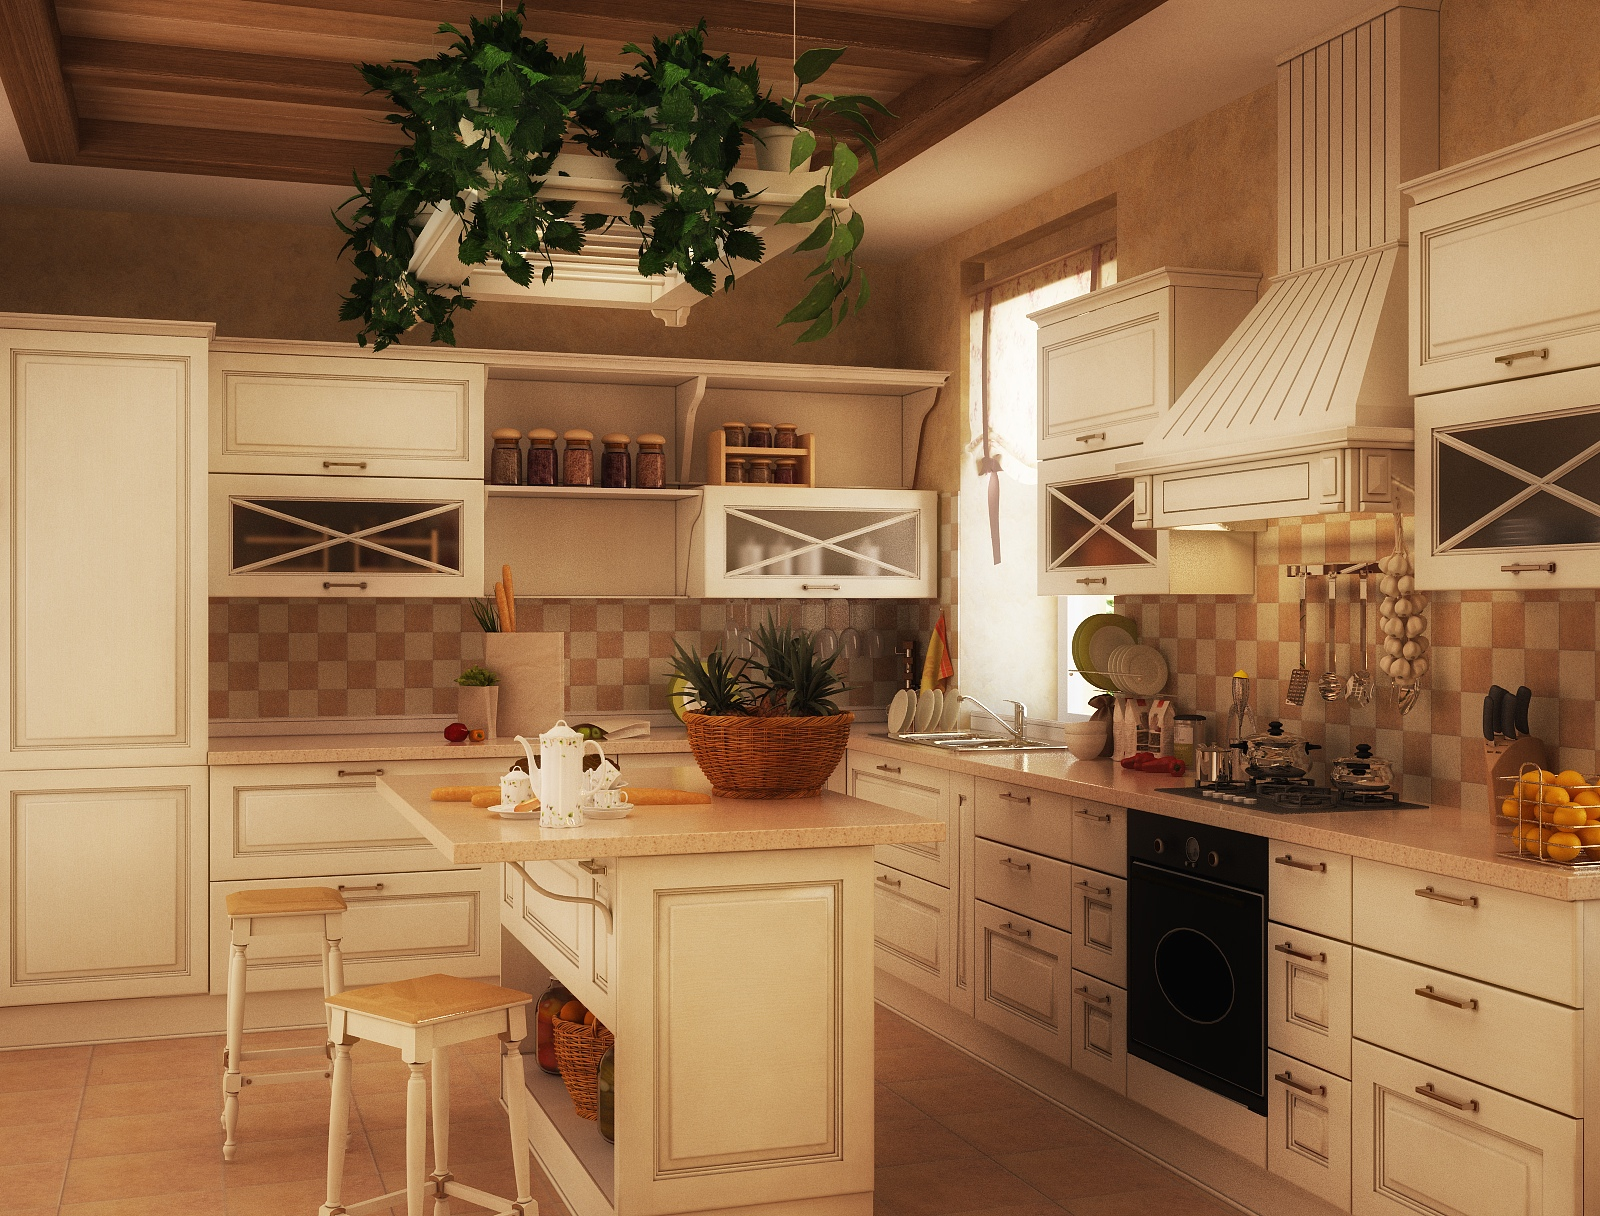 Old world kitchen designs photo gallery - Kitchen Cabinet Design Gallery